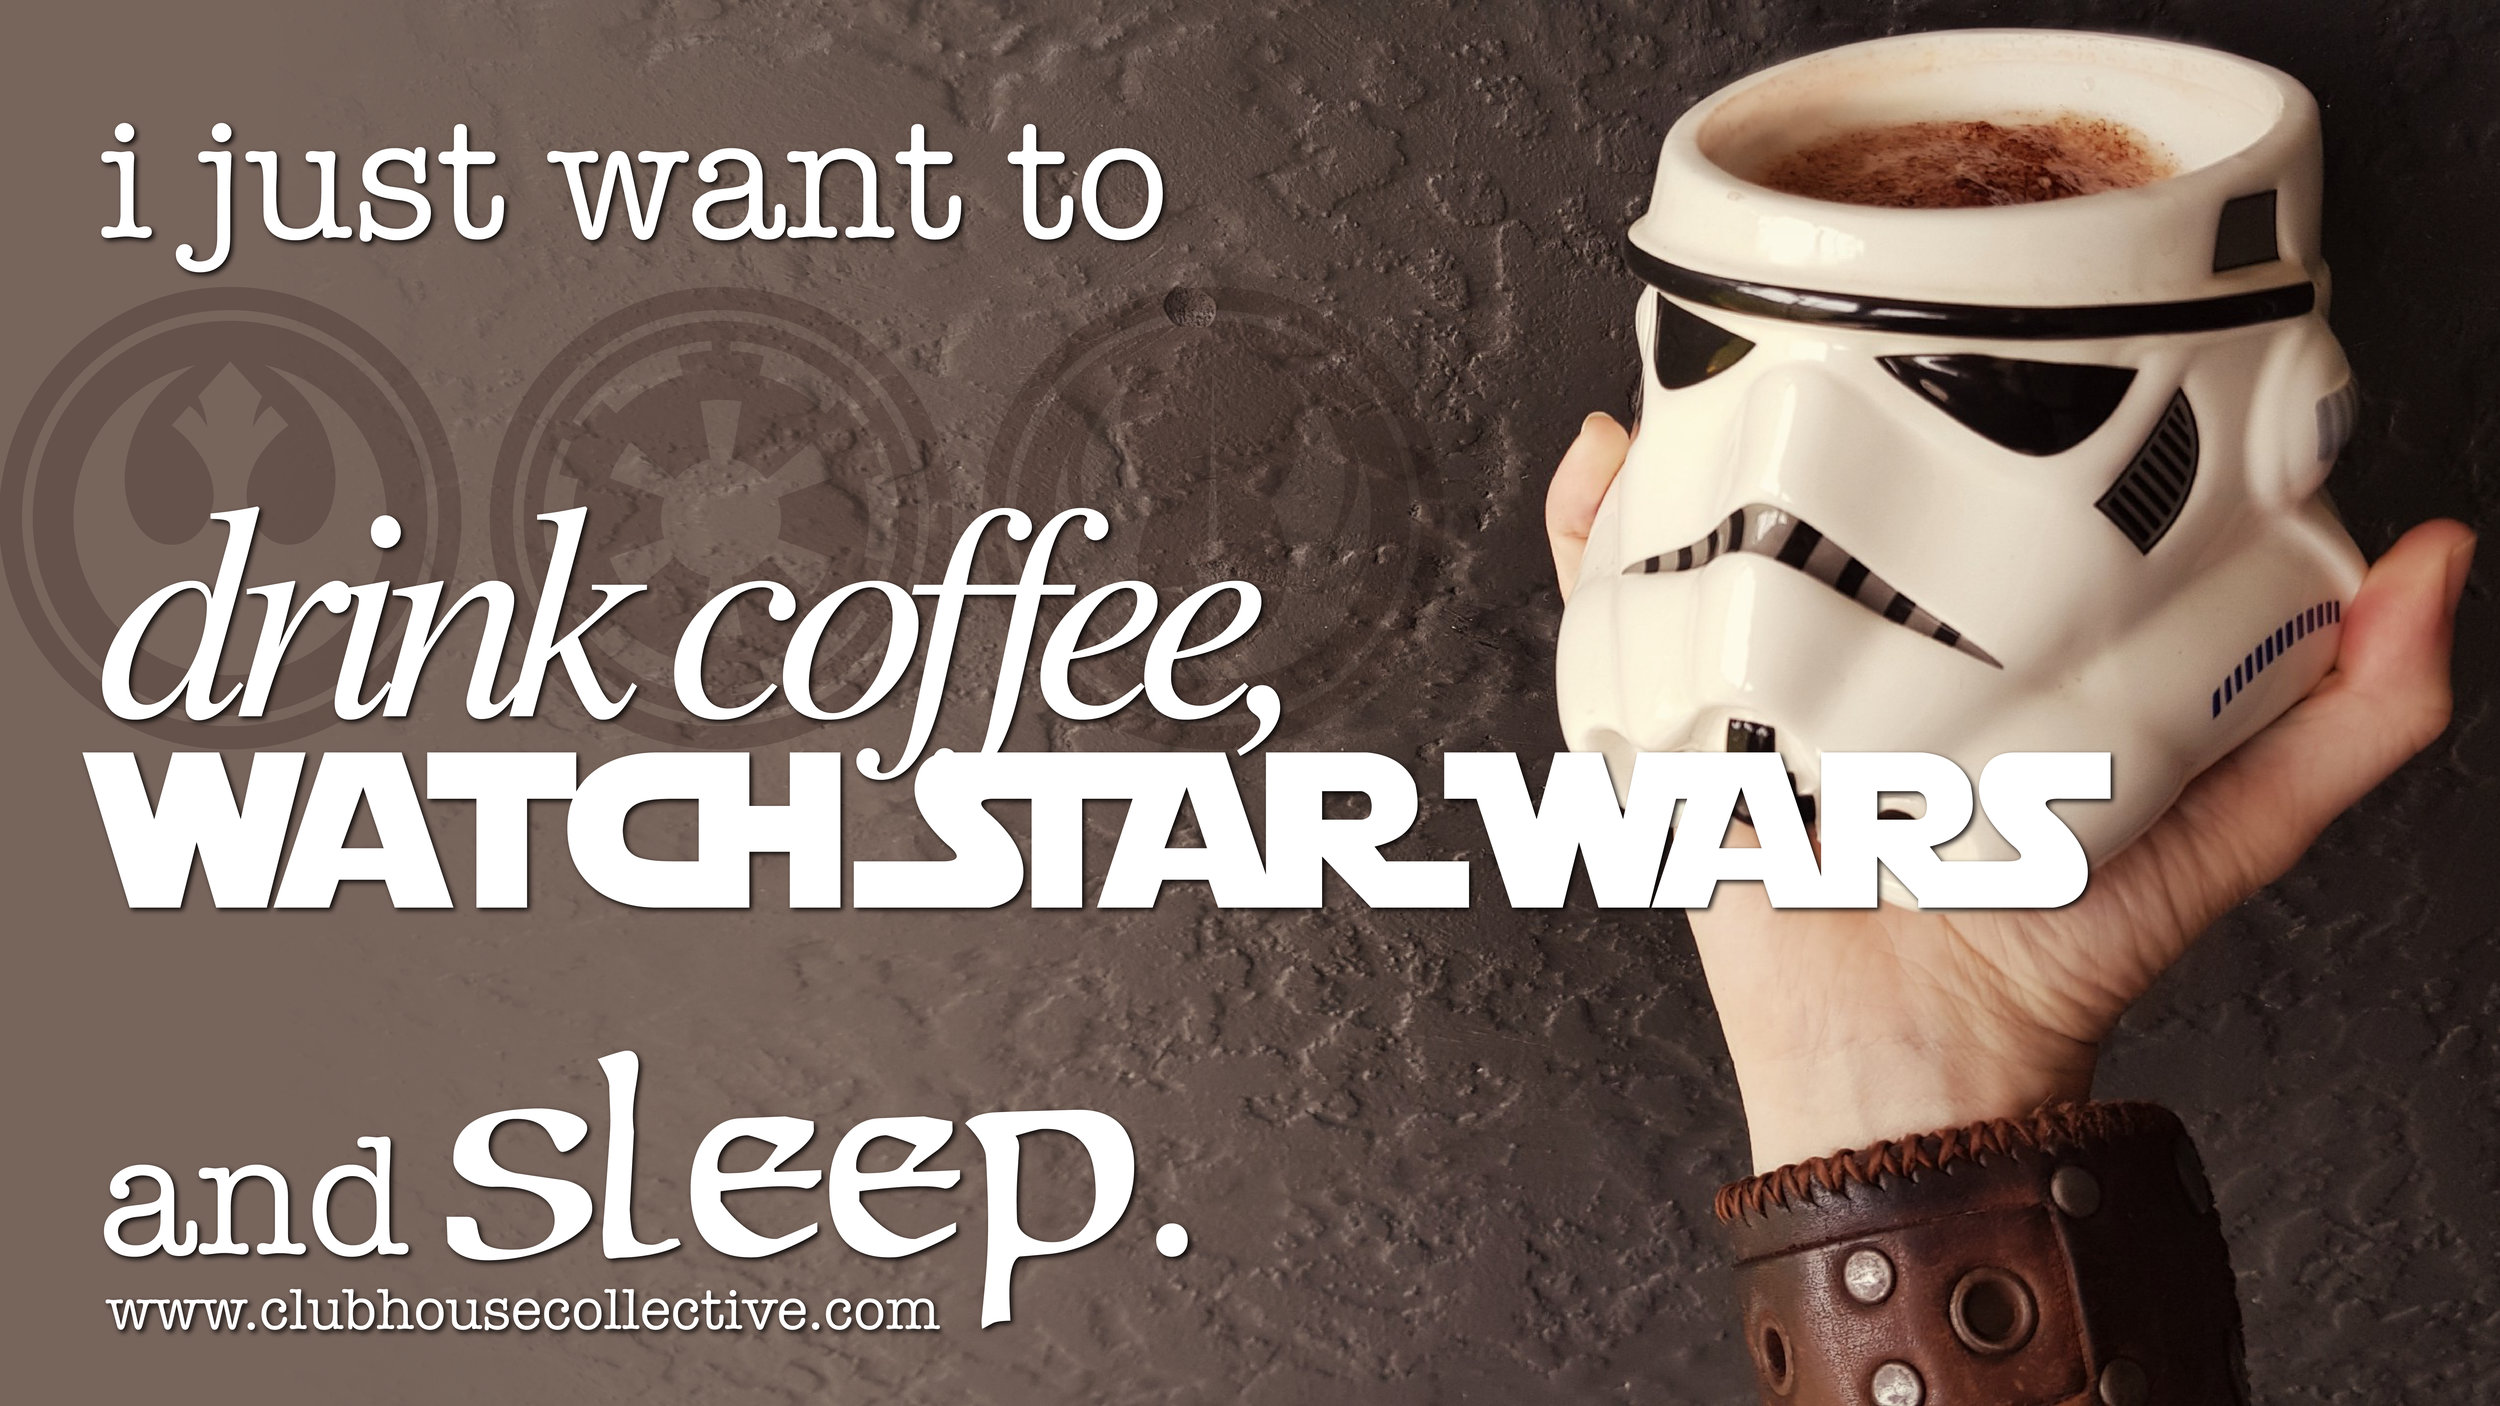 I just want to drink coffee, watch Star Wars and sleep. ~ Corinne Jade, ClubHouse Collective